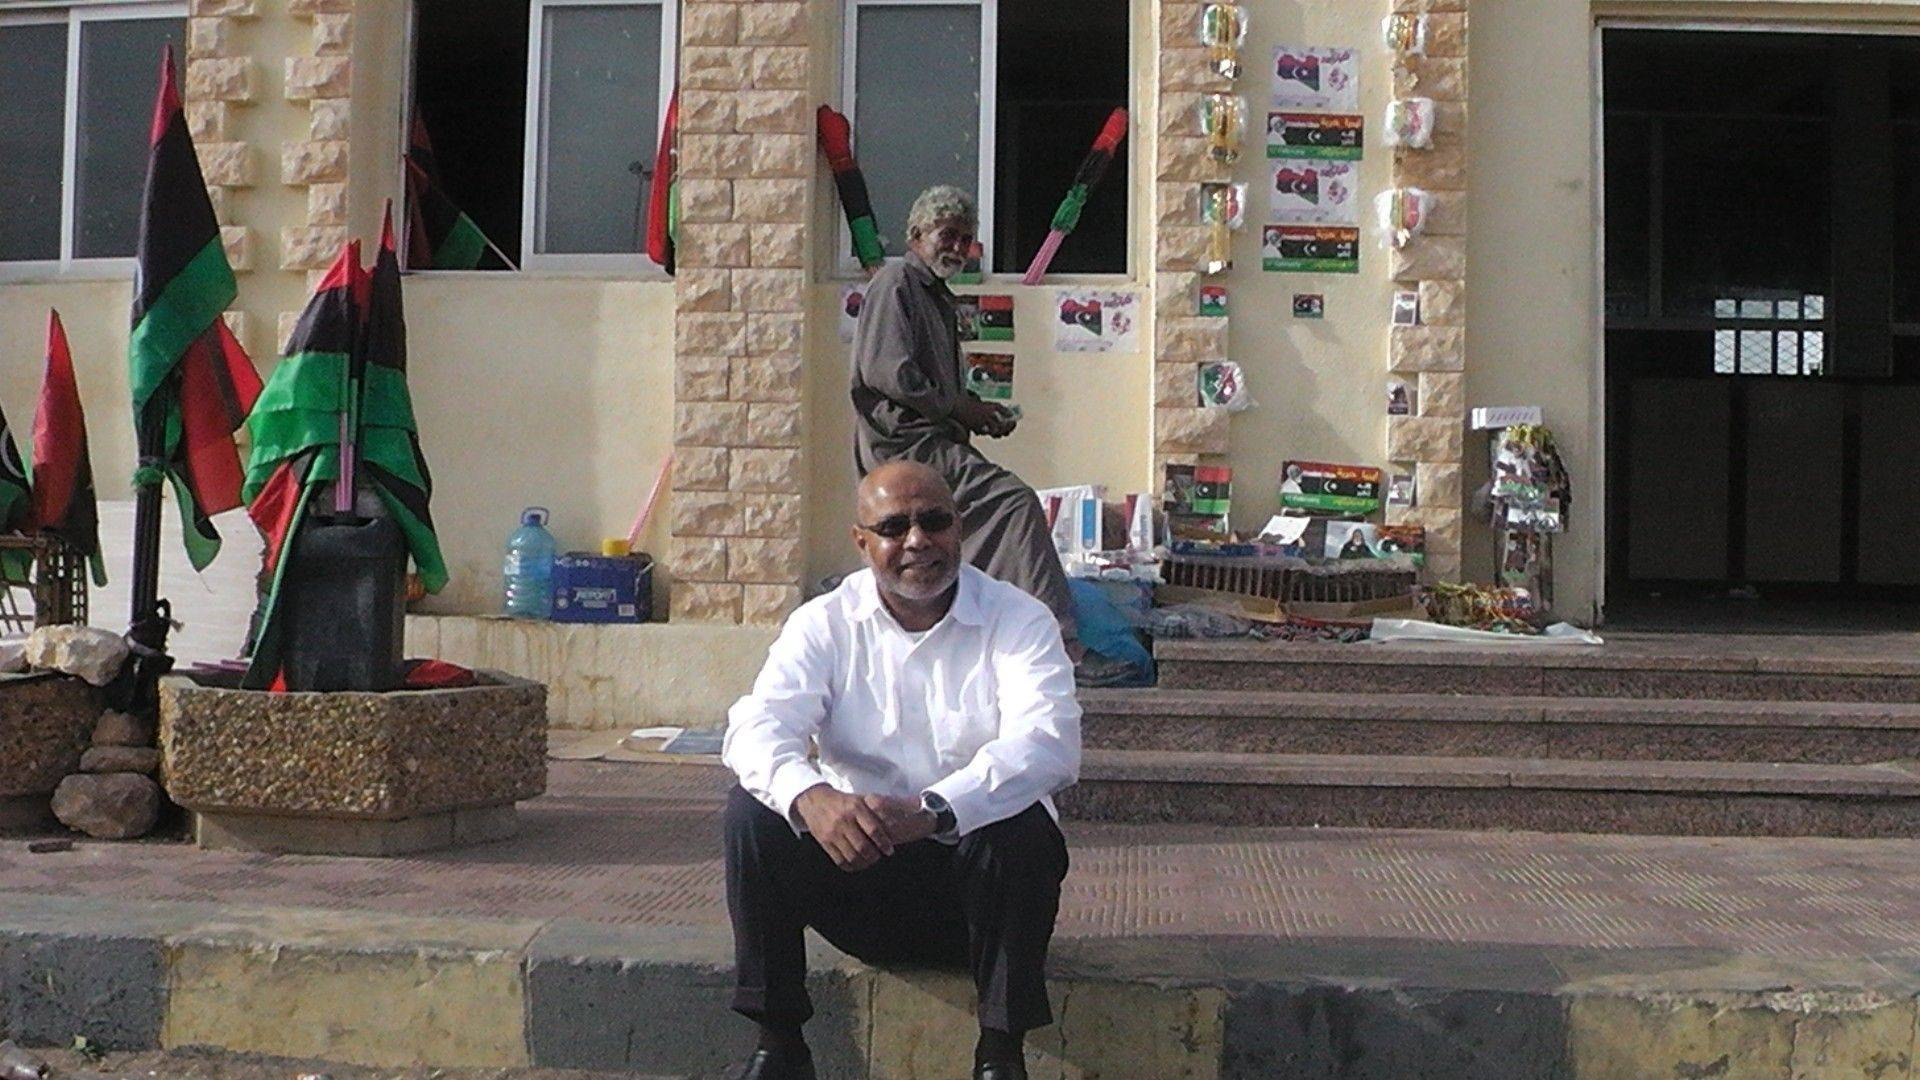 Ibrahim Mohamed sits on a curb in July at the Libyan border with Egypt before returning to his home city of Benghazi, Libya, for the first time in 31 years.